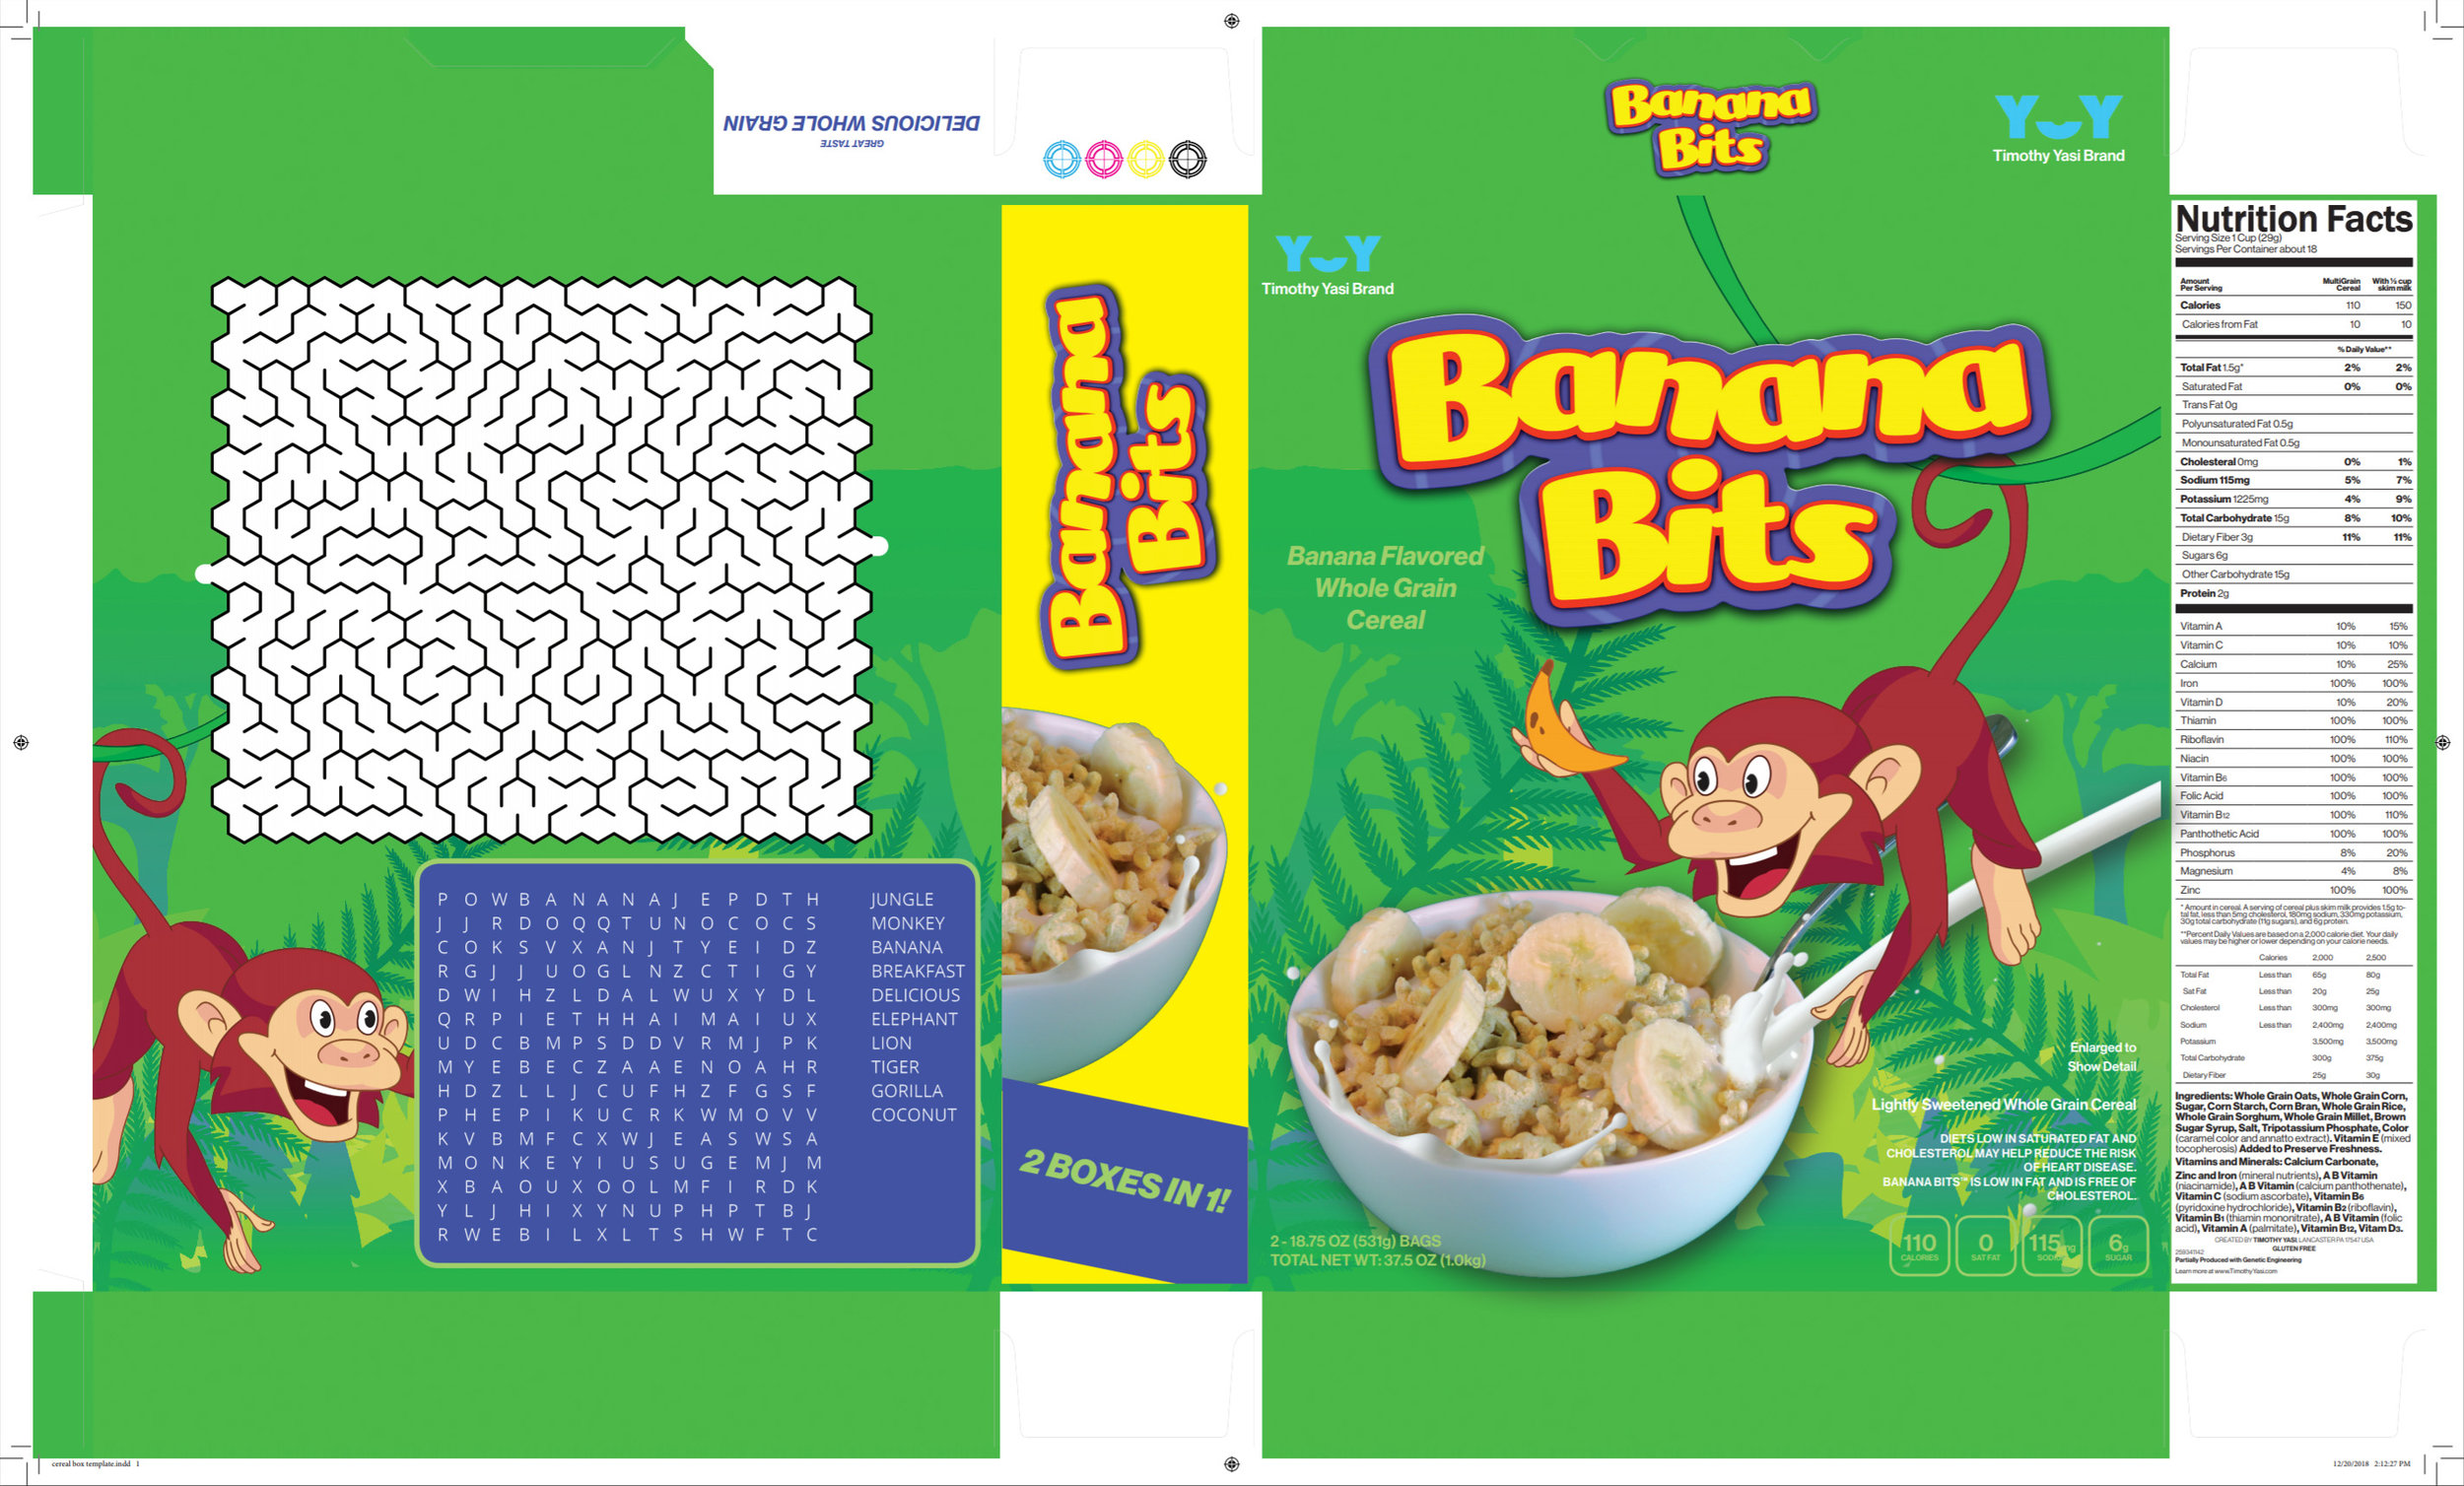 Cereal box design made with Adobe Photoshop and InDesign. I also photographed and edited the cereal bowl image used in this design.